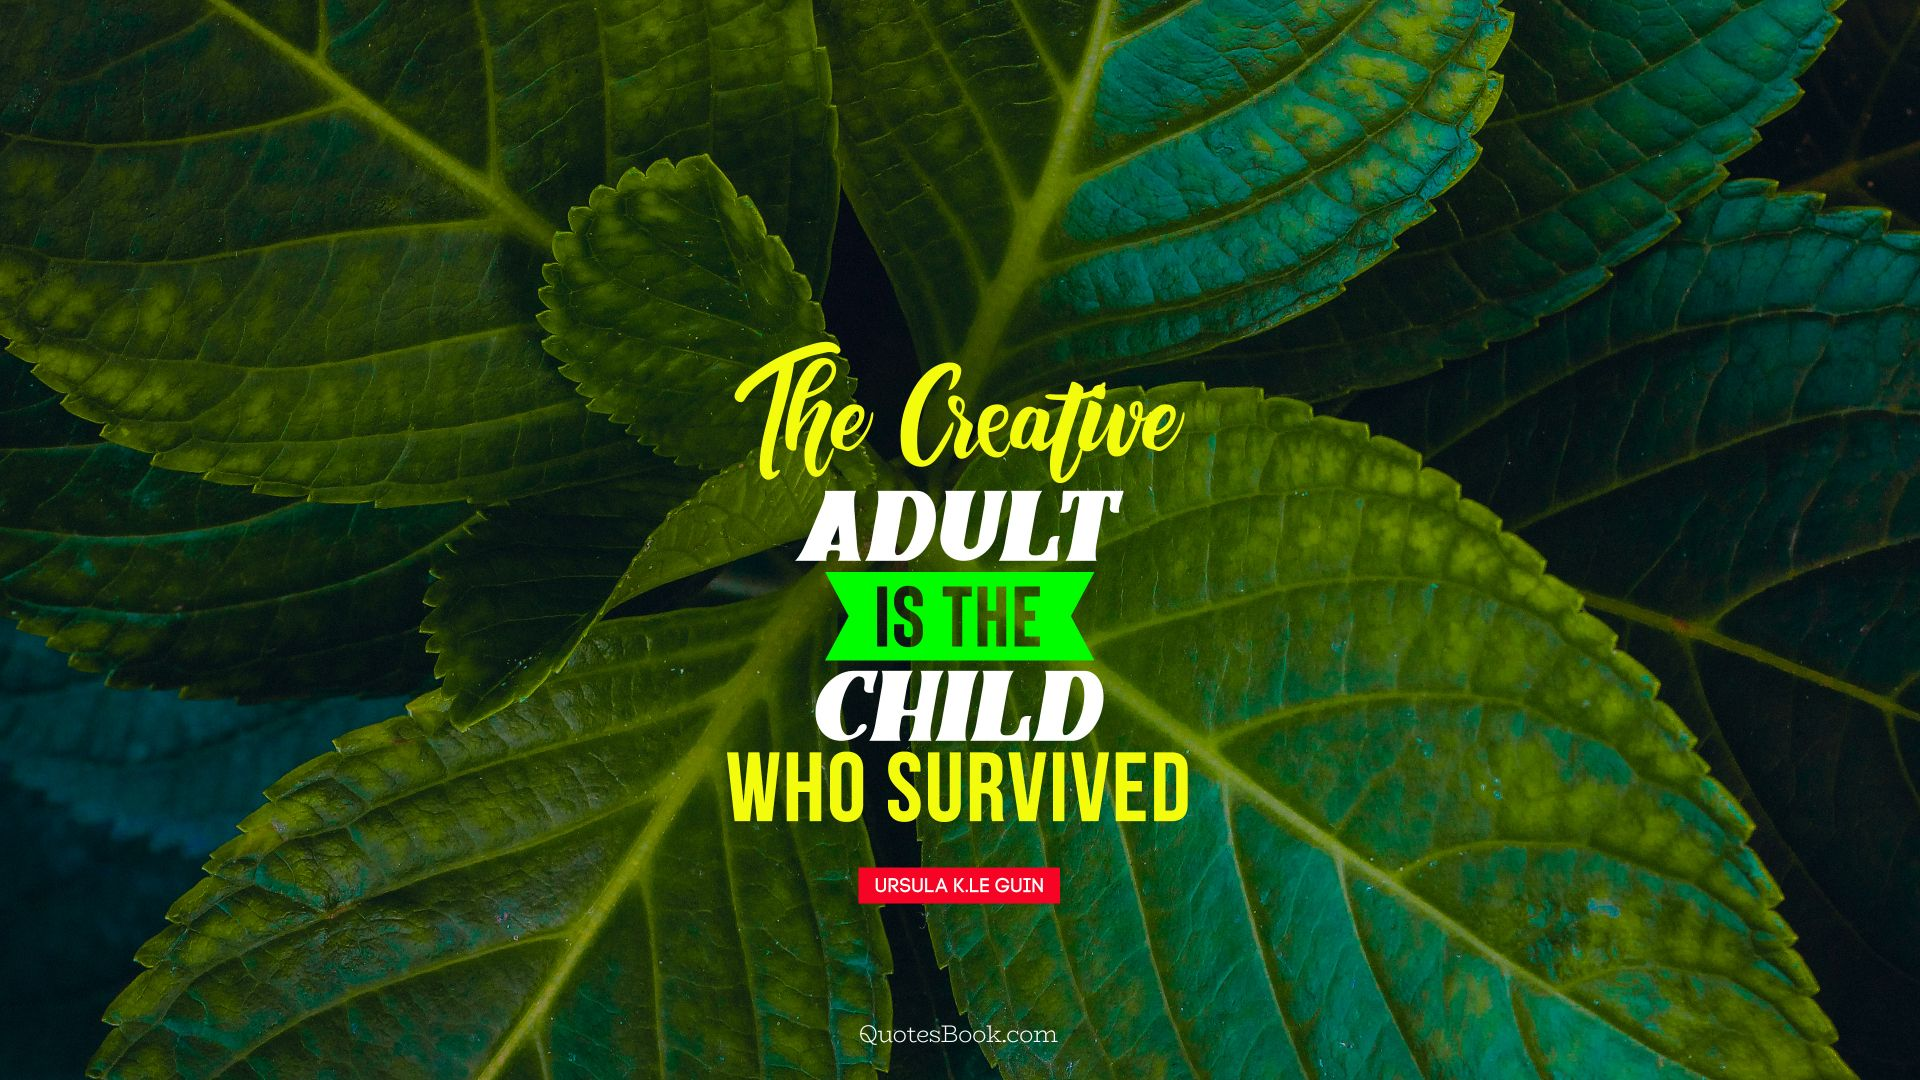 The creative adult is the child who survived. - Quote by Ursula K.Le Guin